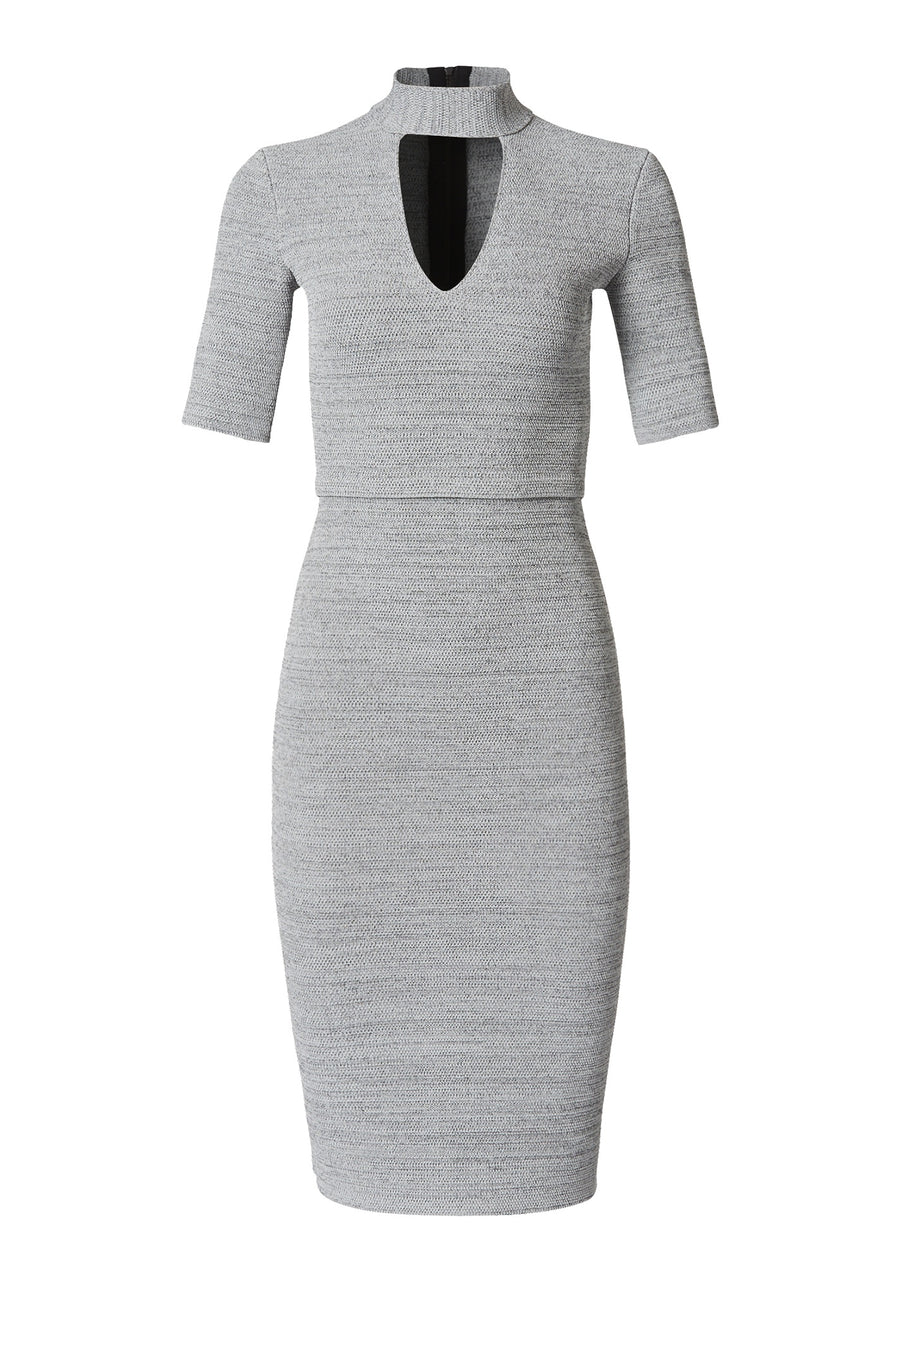 CREPE KNIT TWEED DRESS SMOKE, SMOKE color